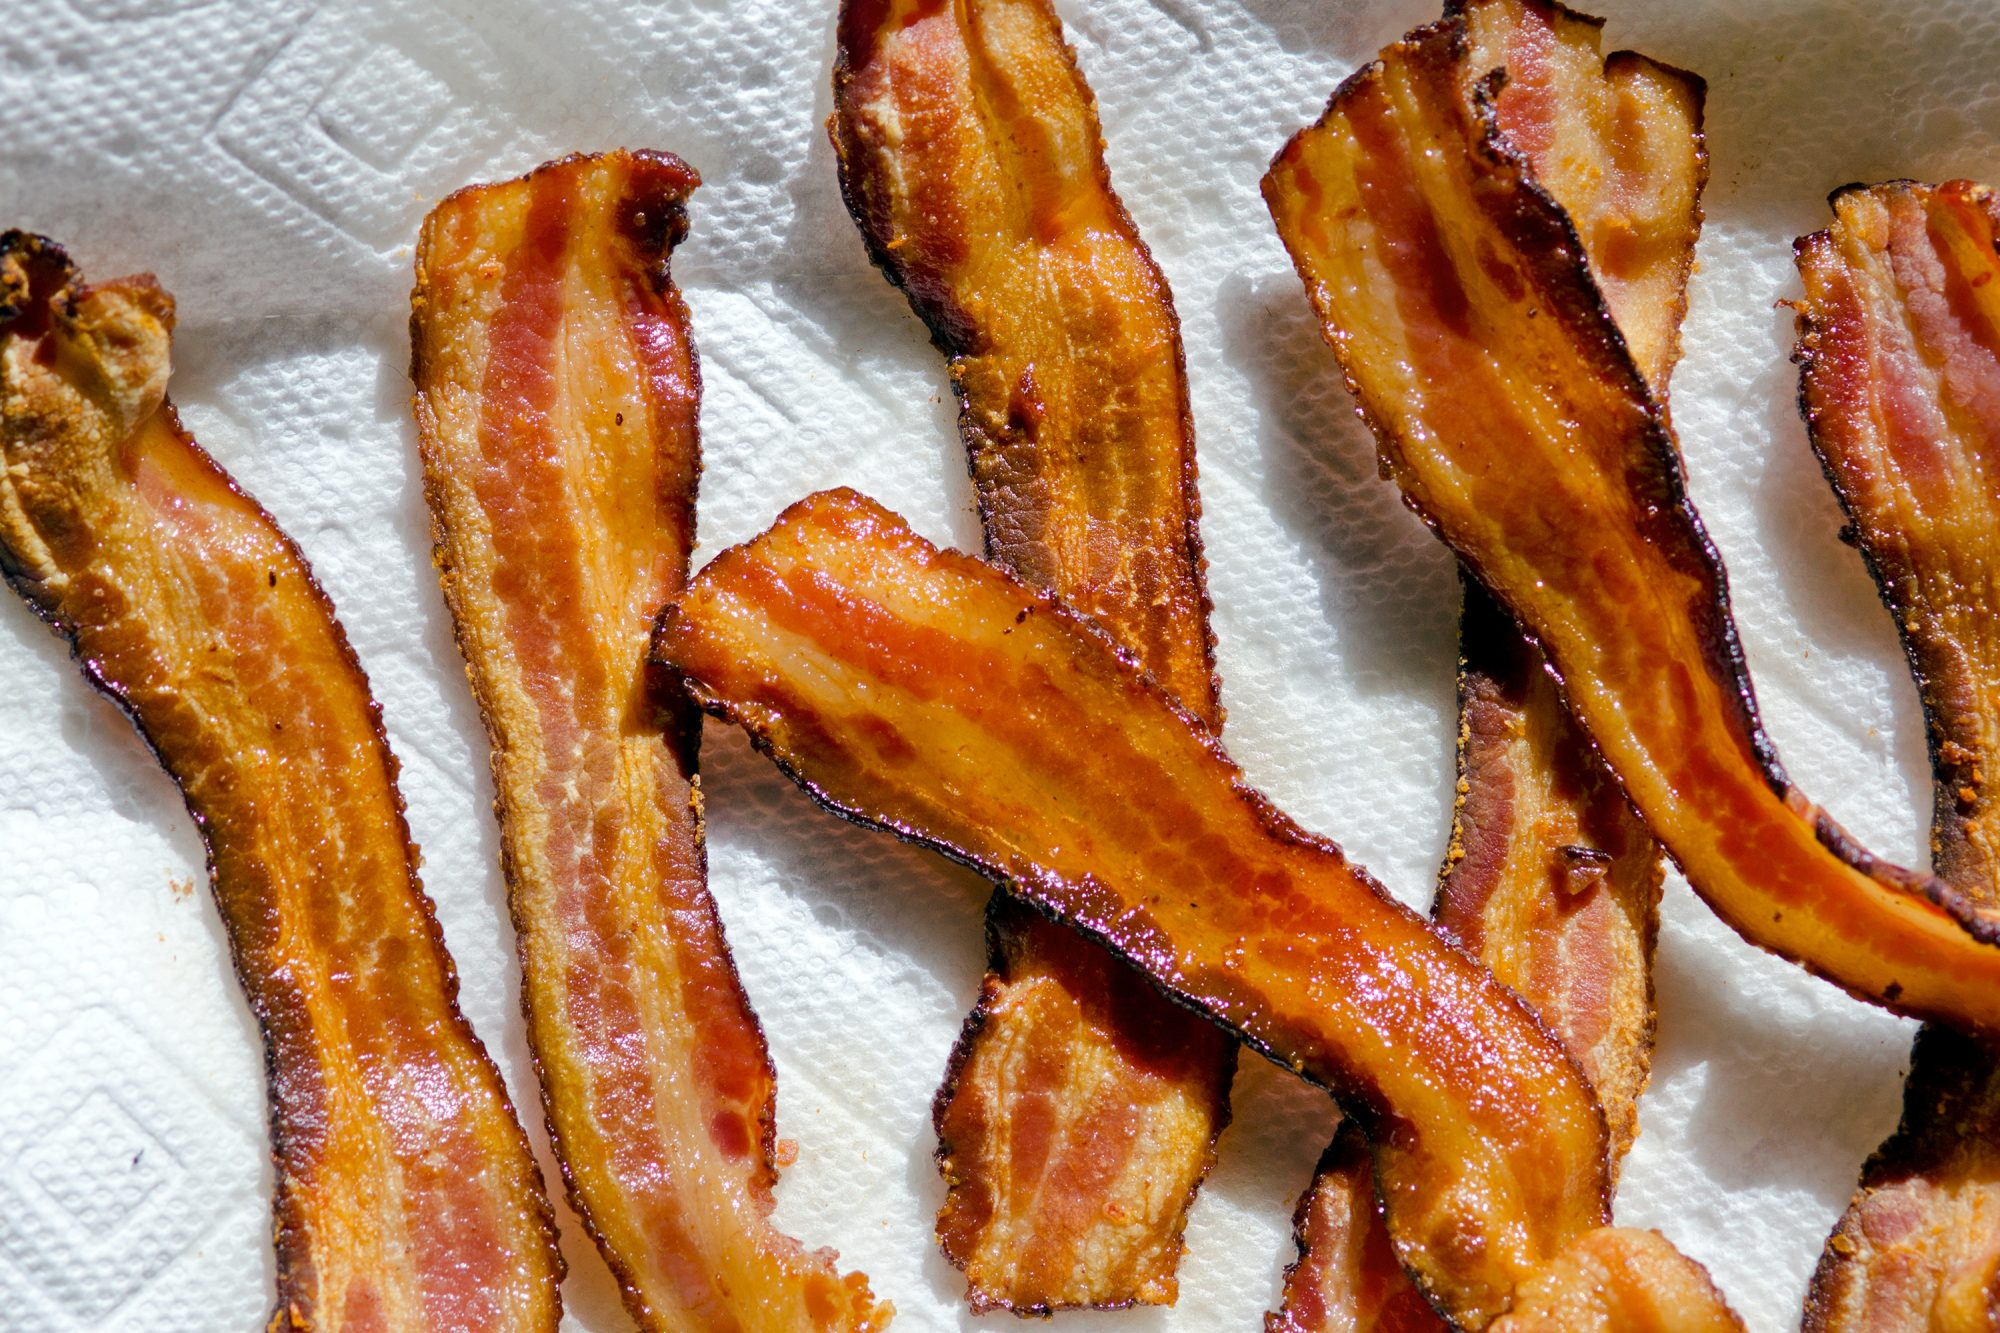 The Foolproof Way to Cook Bacon in the Microwave